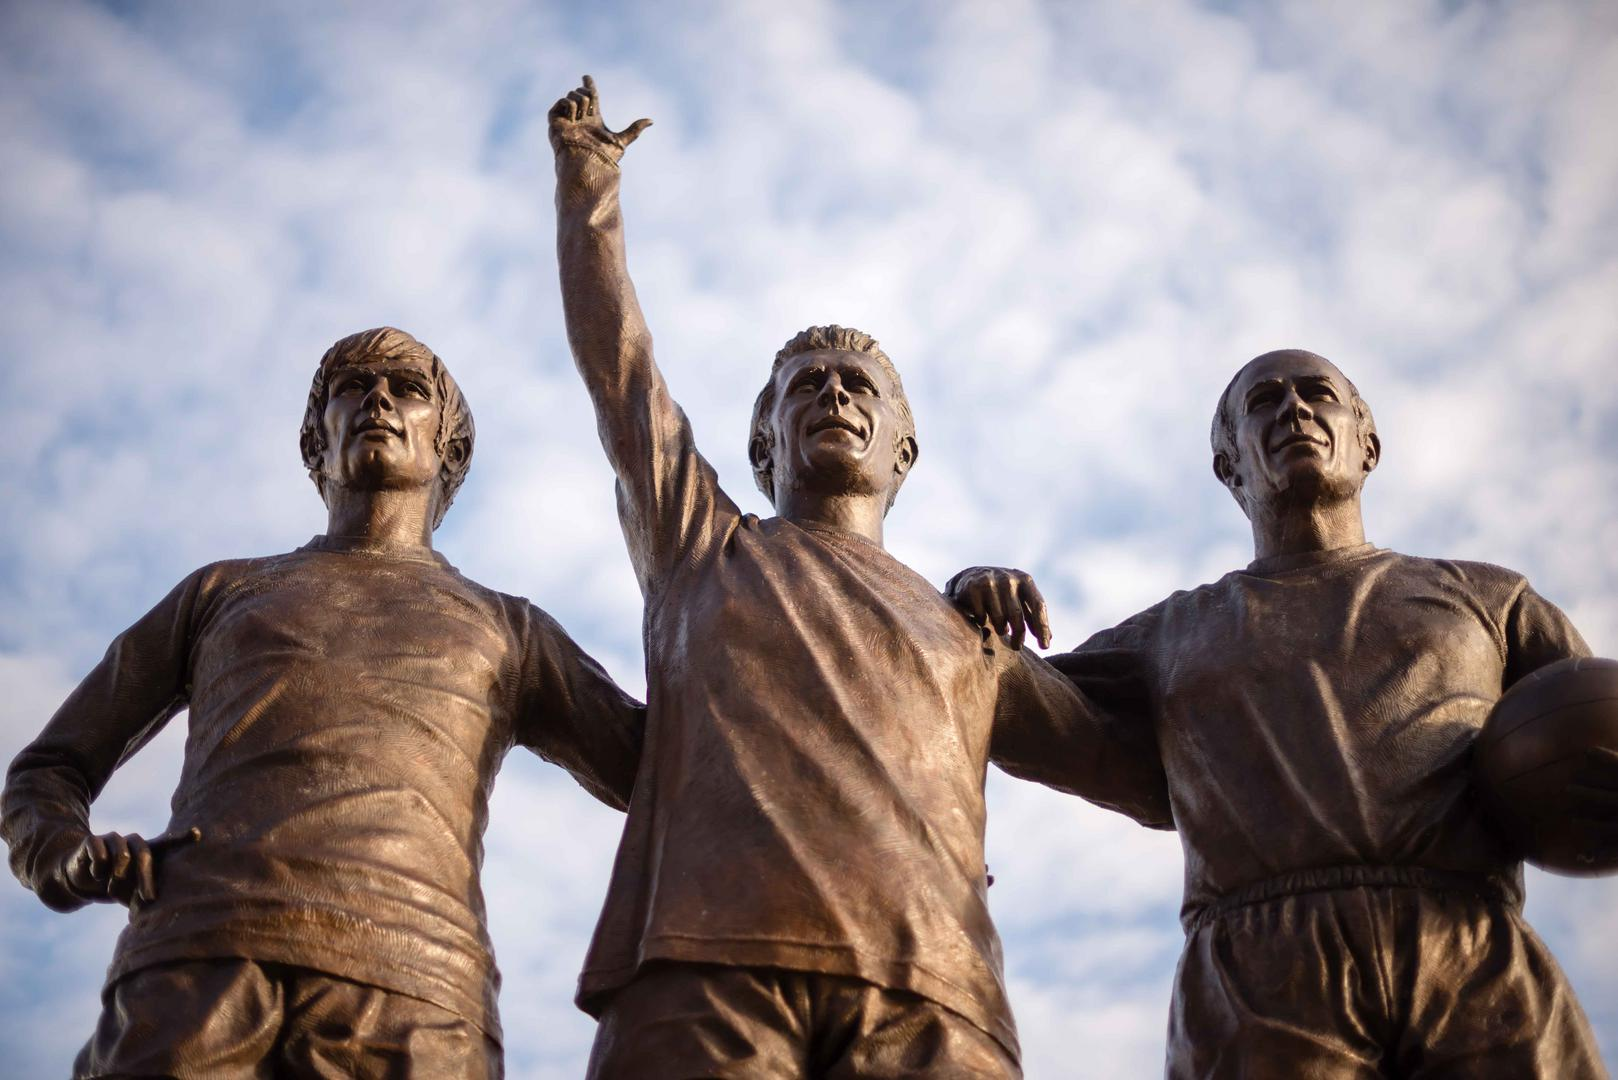 The United Trinity statue